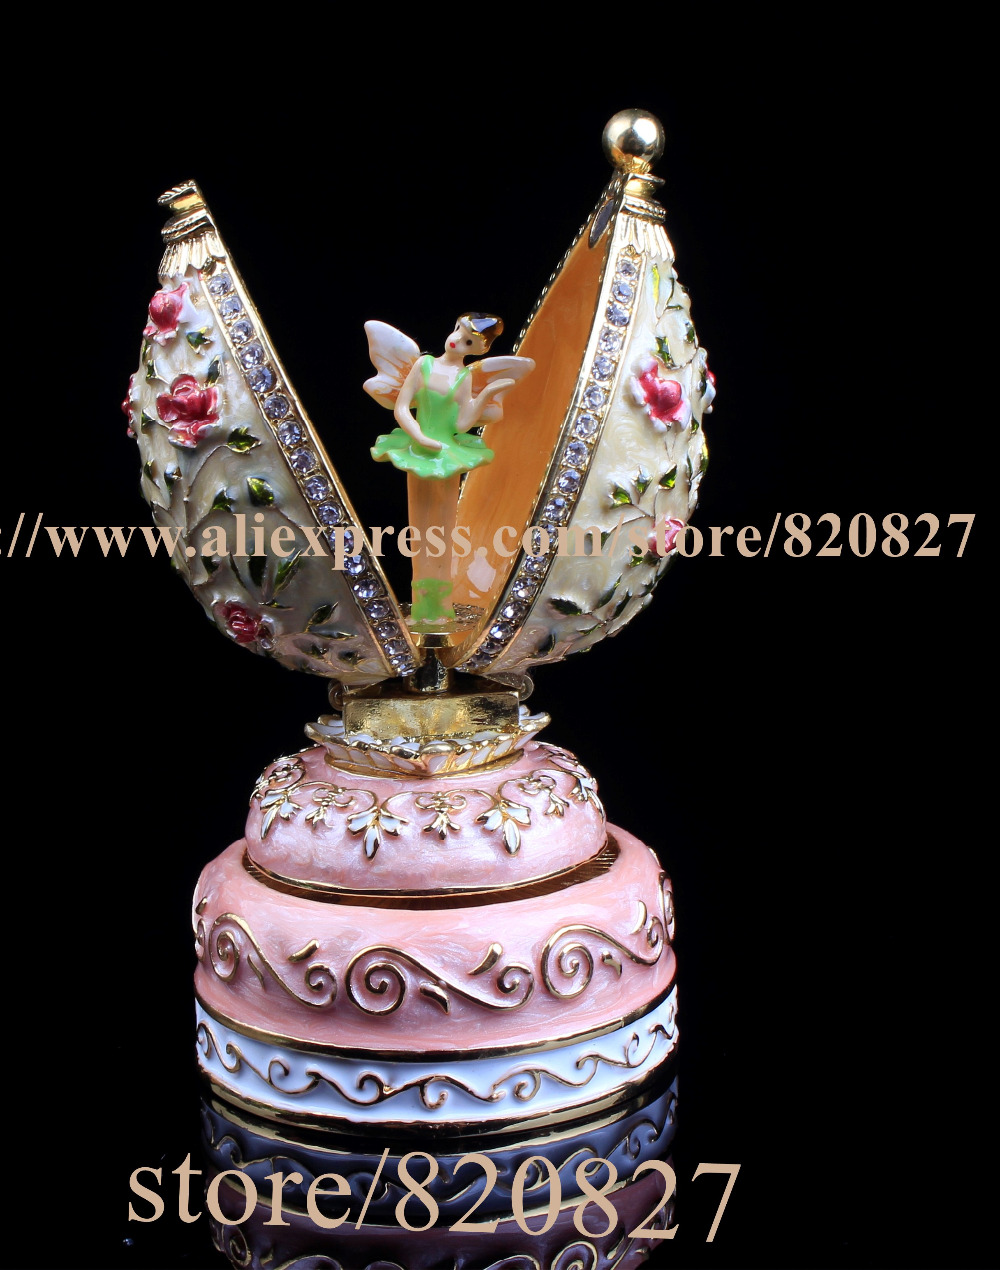 Vintage Angel Egg-Shaped Music Box Faberge Style Egg Music Box Pewter Figurine, Musical Egg Jewelry Box with Dance Angel inside charming simulation piano style jewelry storage box with wind up music effect